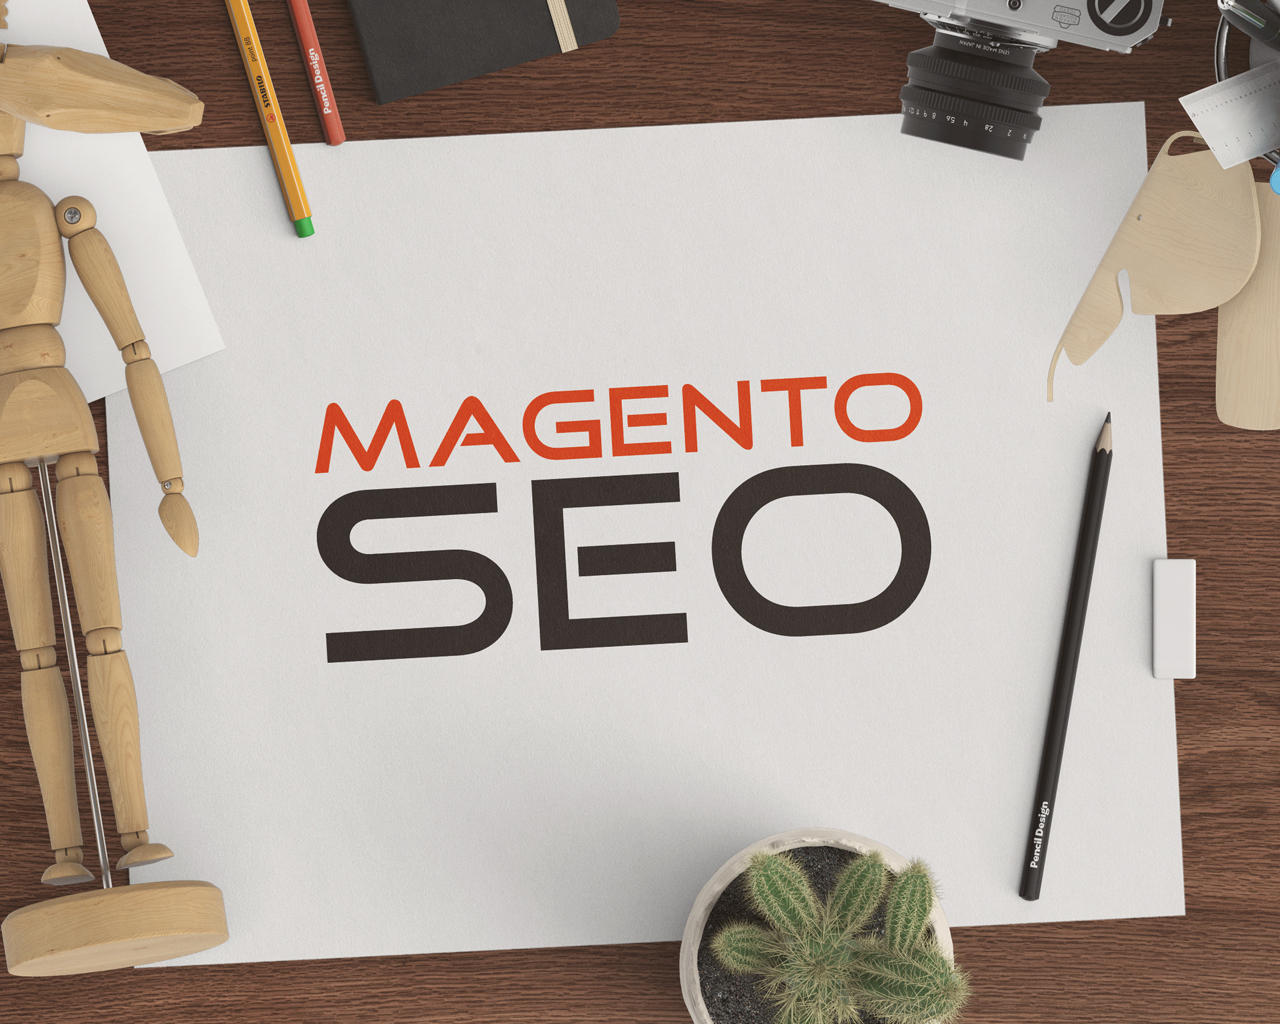 Magento Website SEO (On-Page SEO + Security) by hasanet - 103898